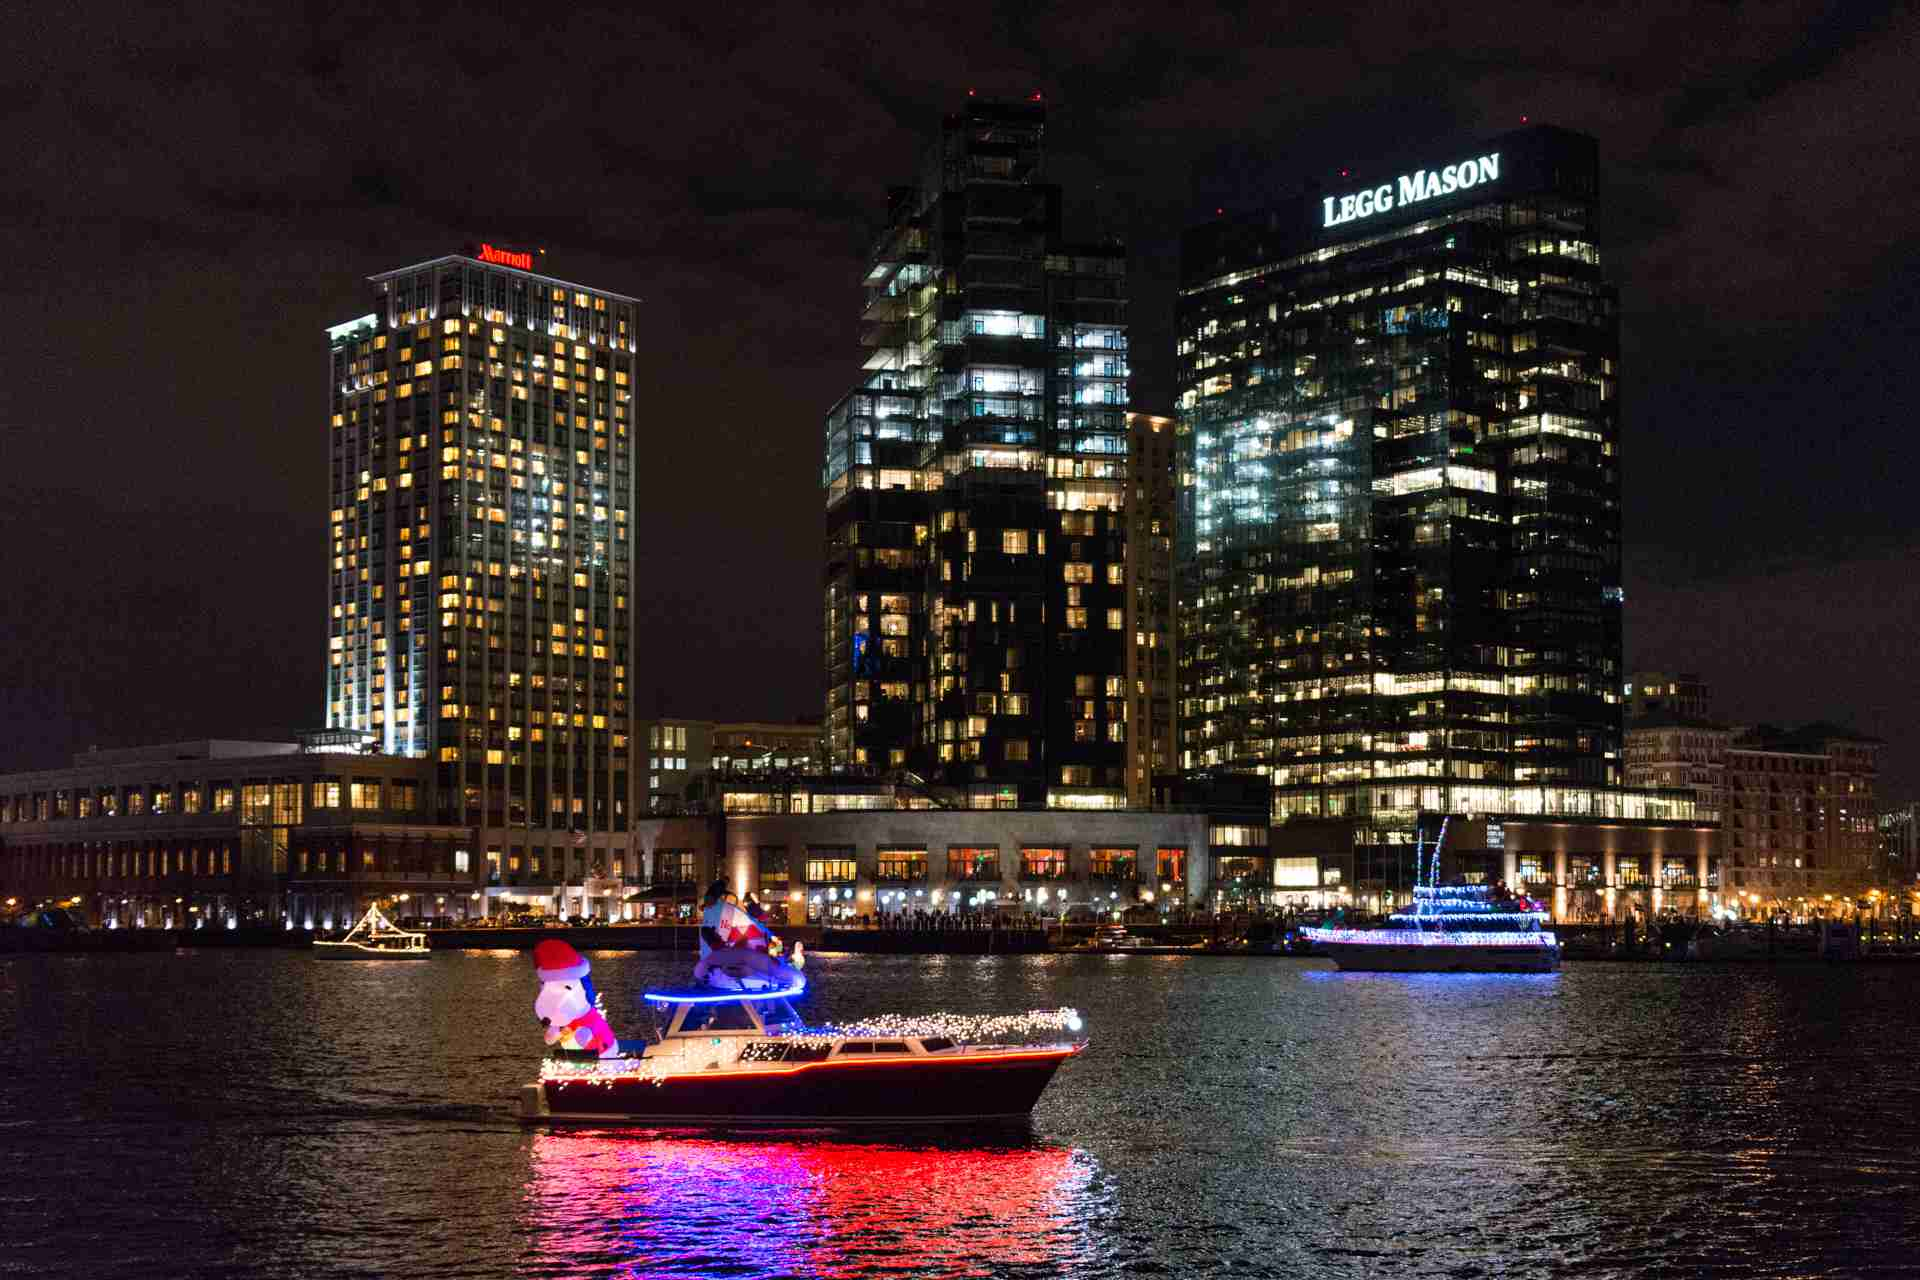 Baltimore Parade of Lighted Boats